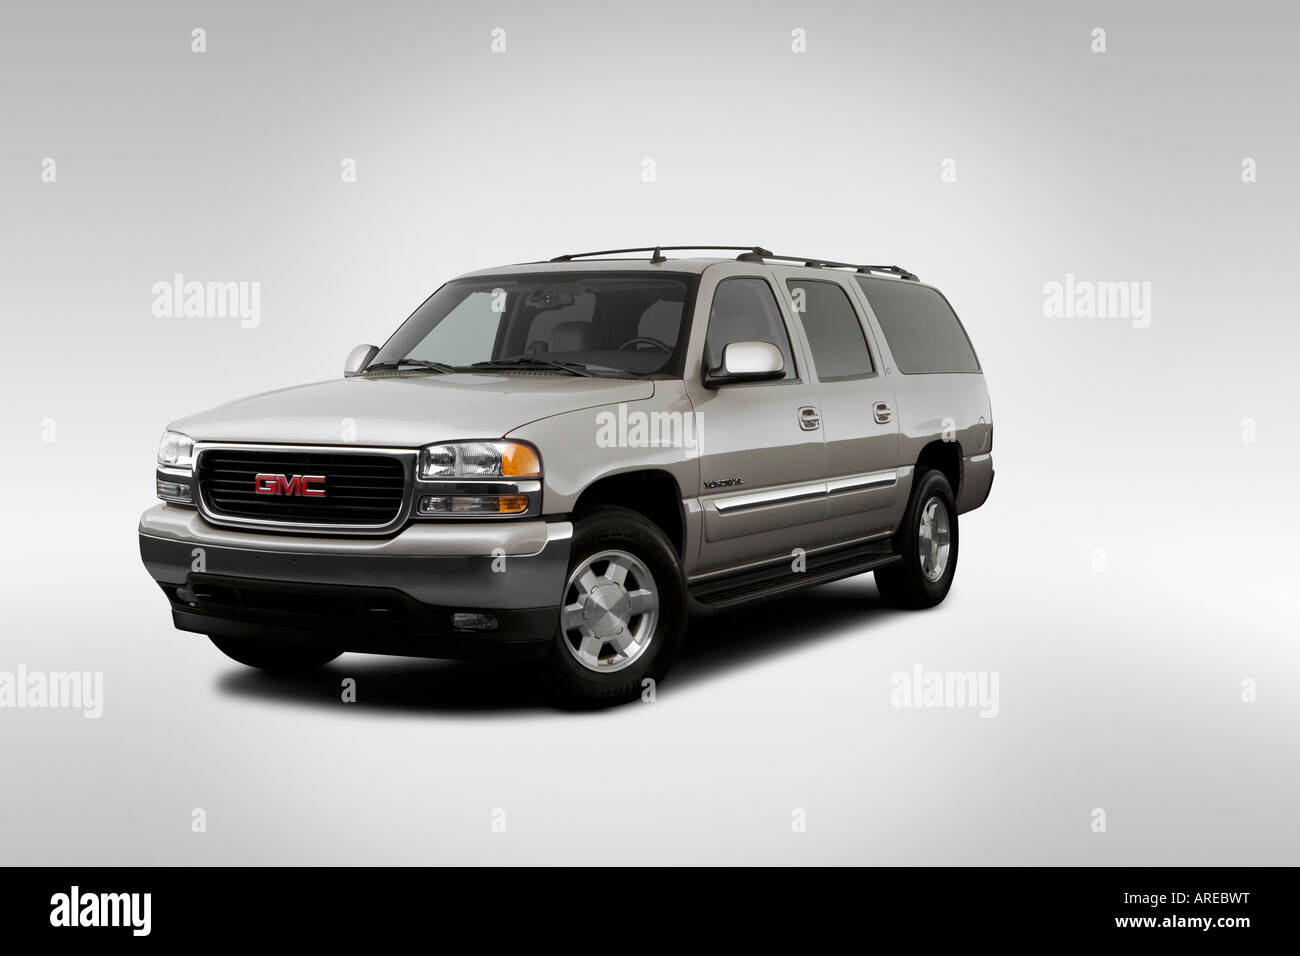 2005 gmc yukon xl 1500 sle in silver front angle view stock image